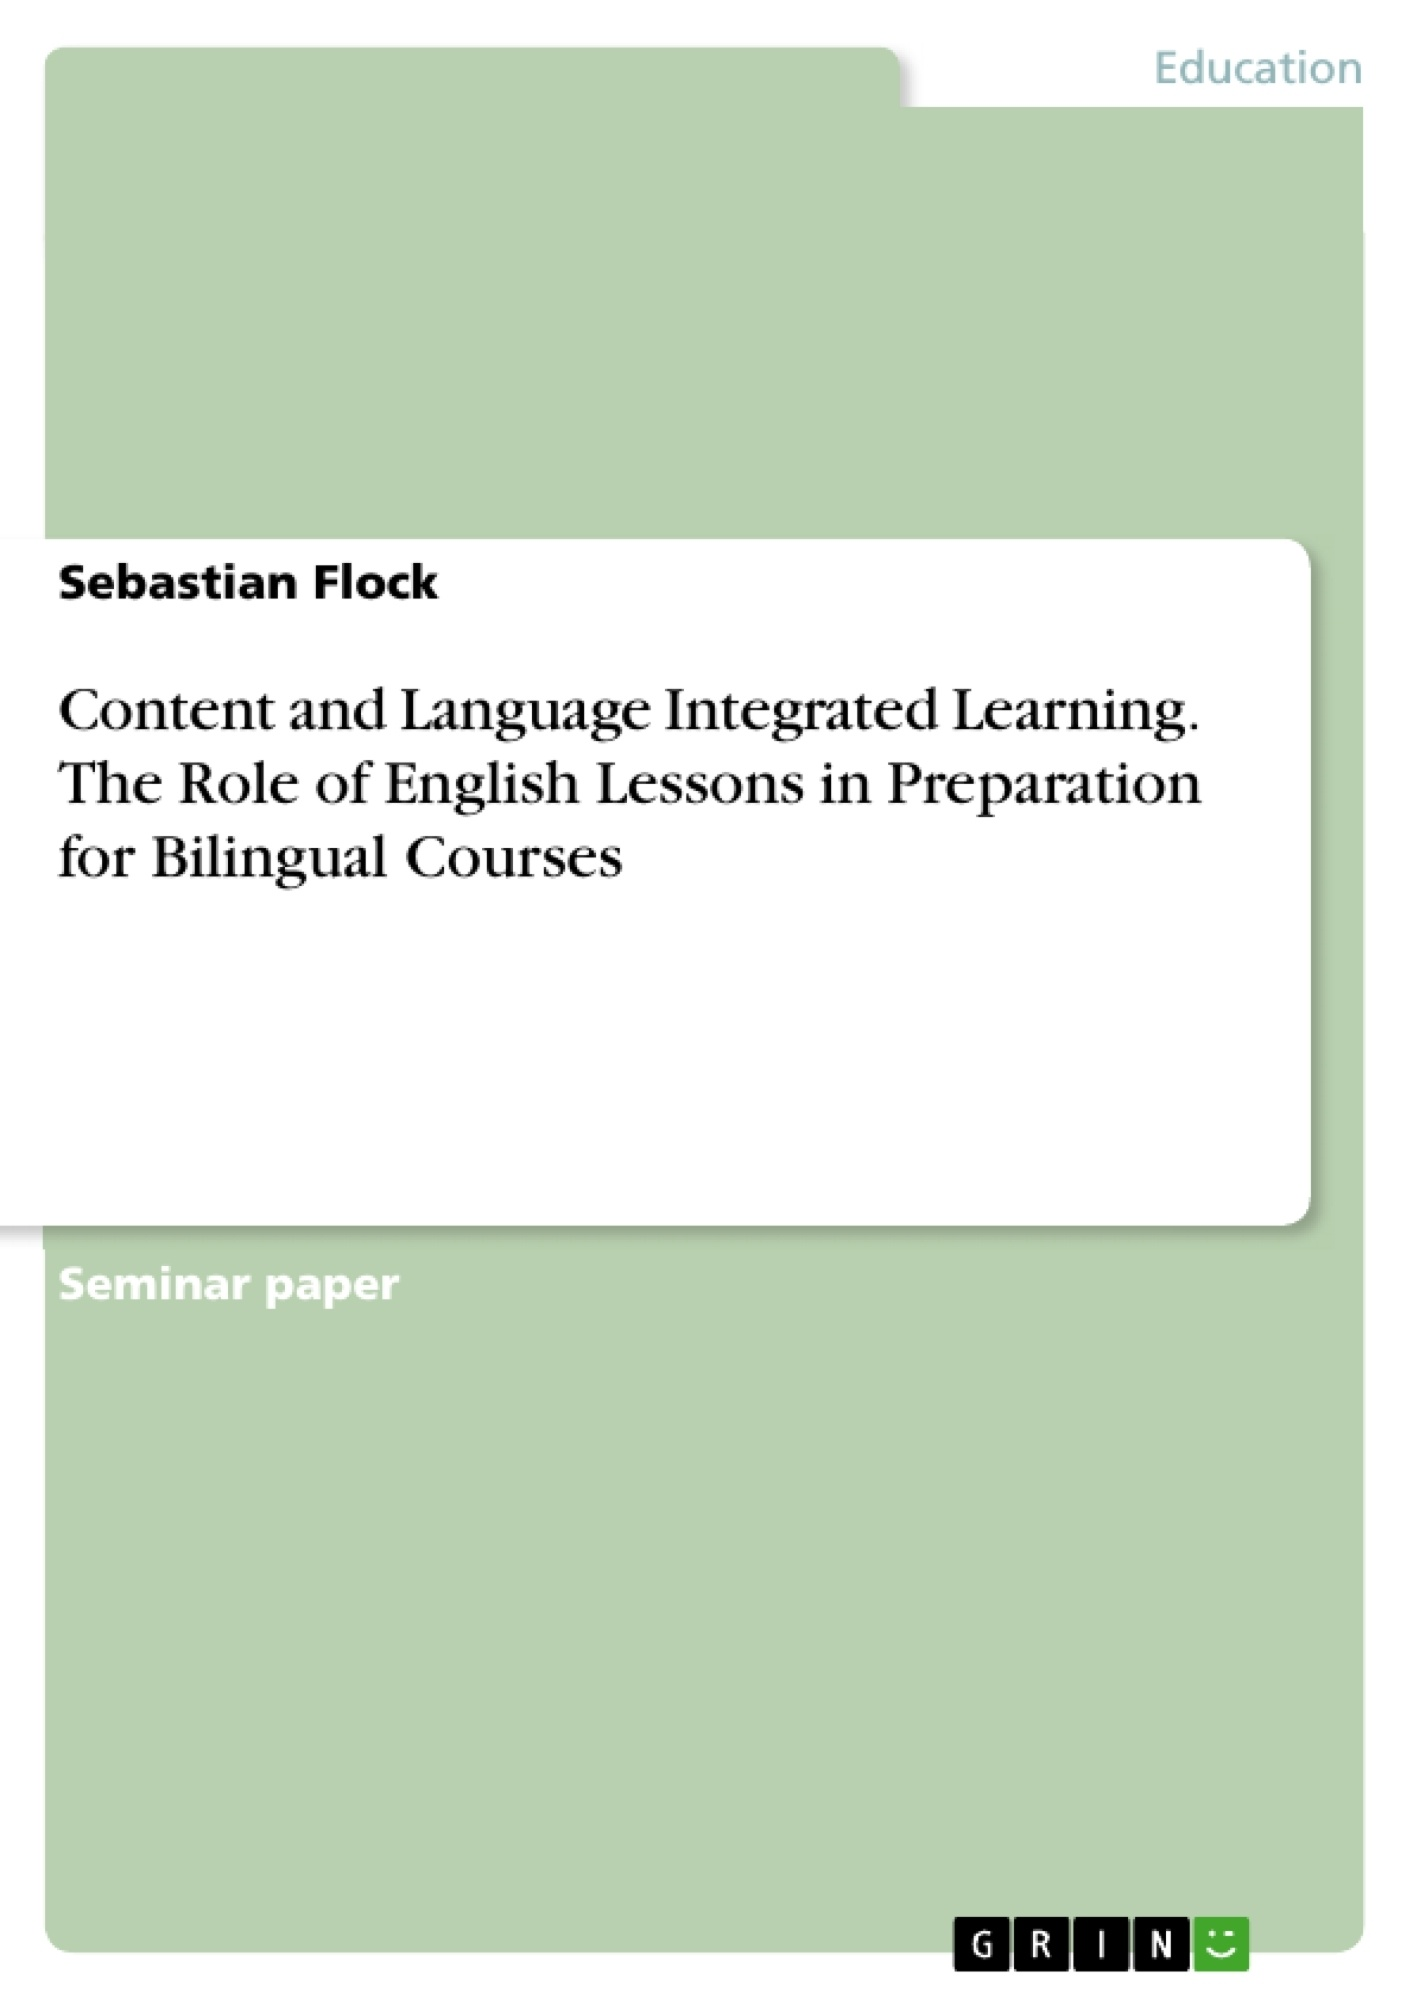 Title: Content and Language Integrated Learning. The Role of English Lessons in Preparation for Bilingual Courses